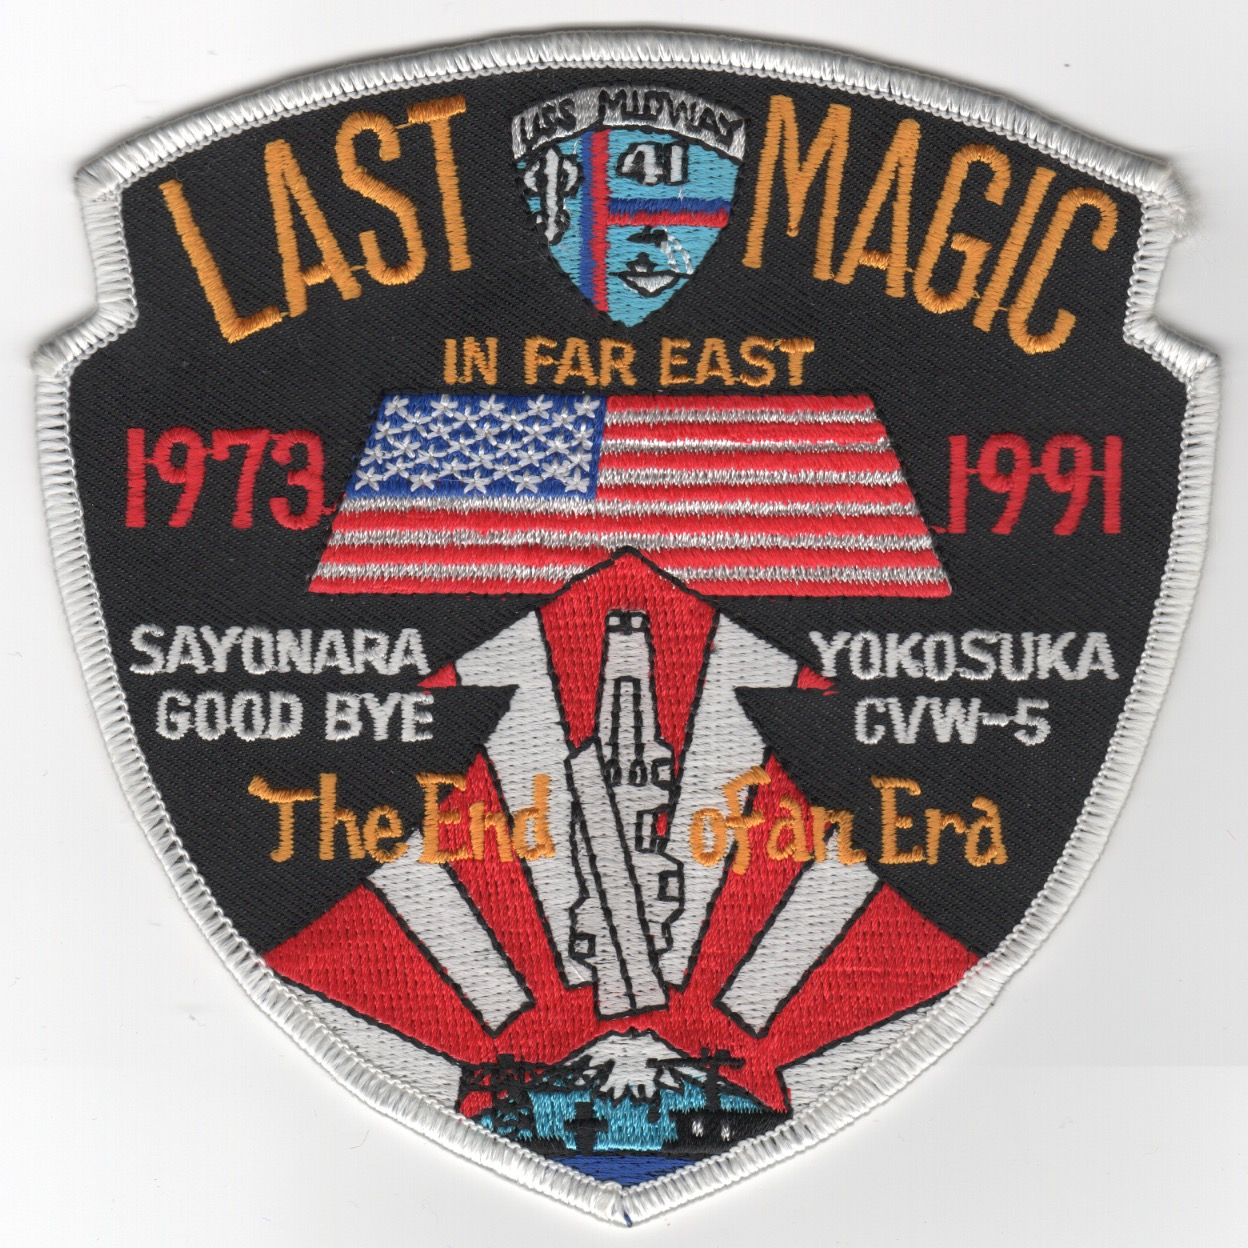 399) CV-41 '1991 LAST MAGIC' Cruise Patch